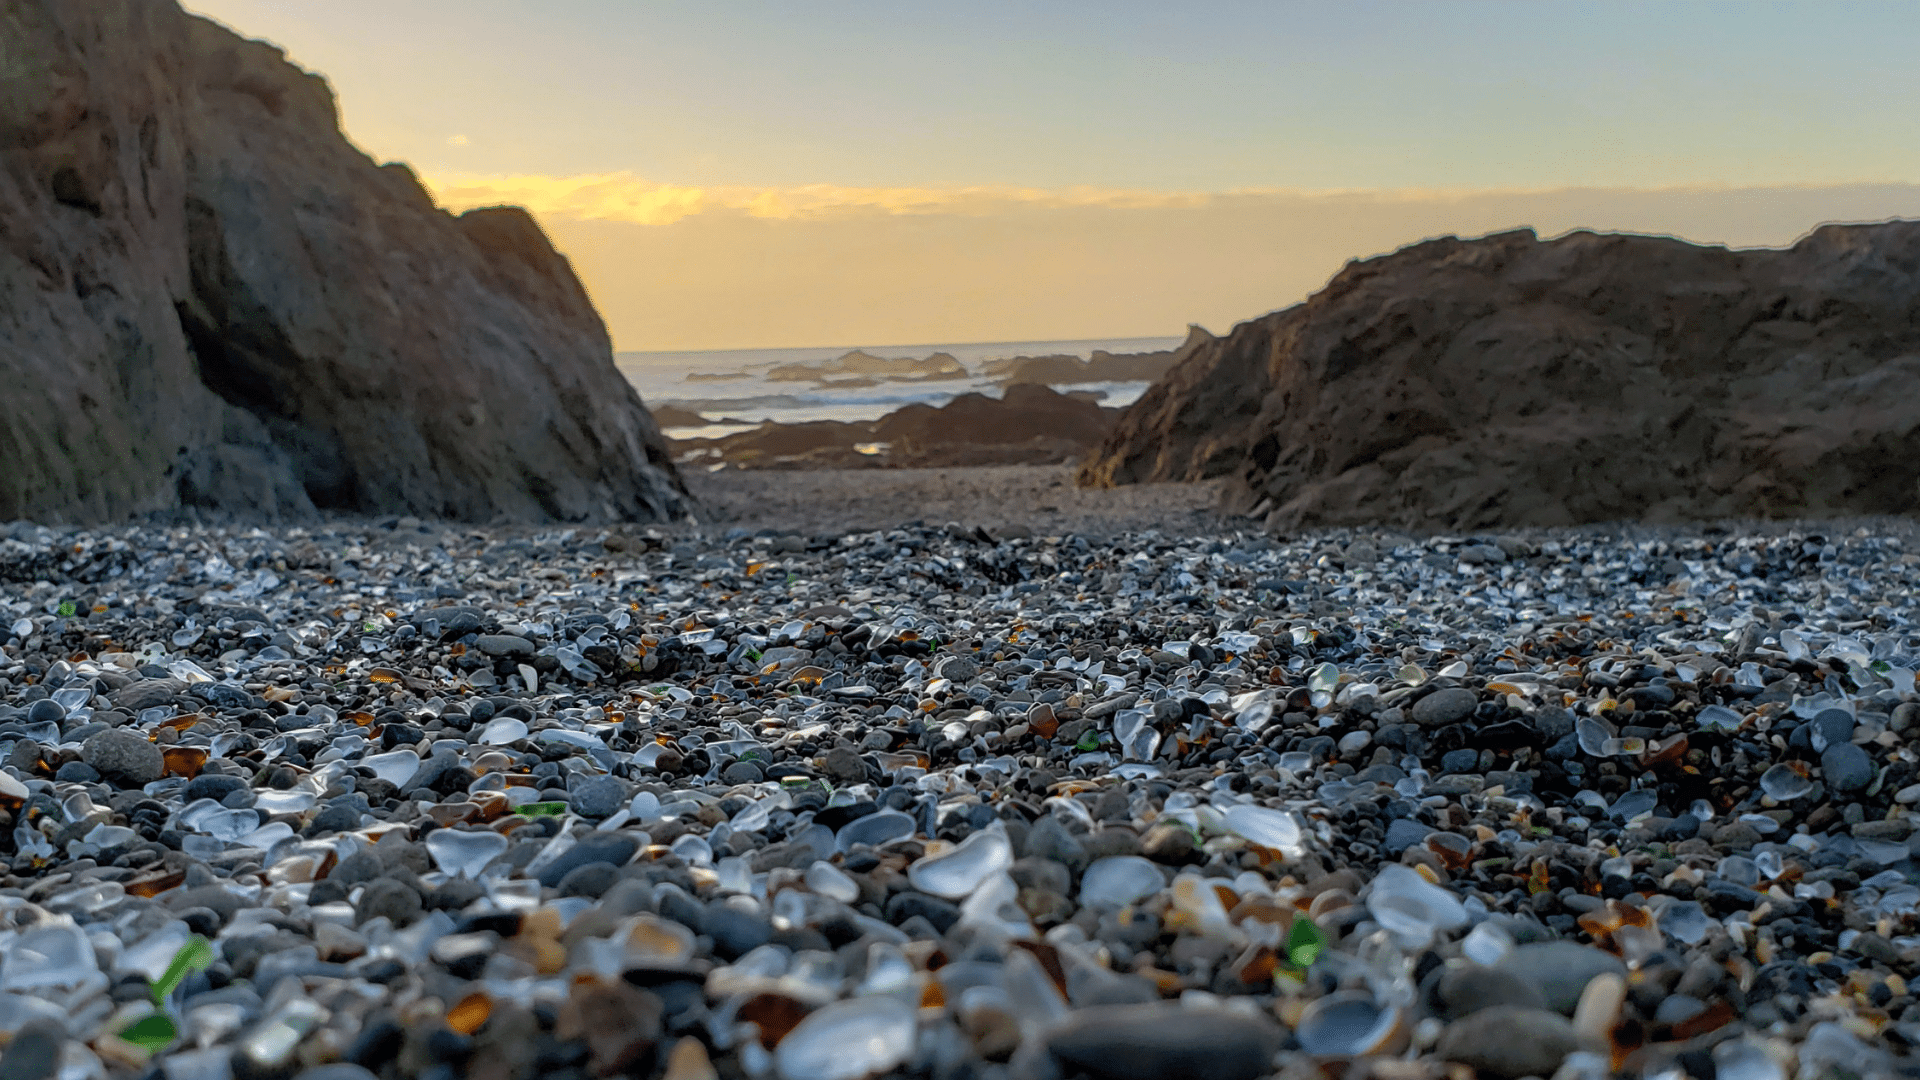 Sea glass on the beach in the forefront and cliffs and the ocean at sunset in the background in Fort Bragg,CA.